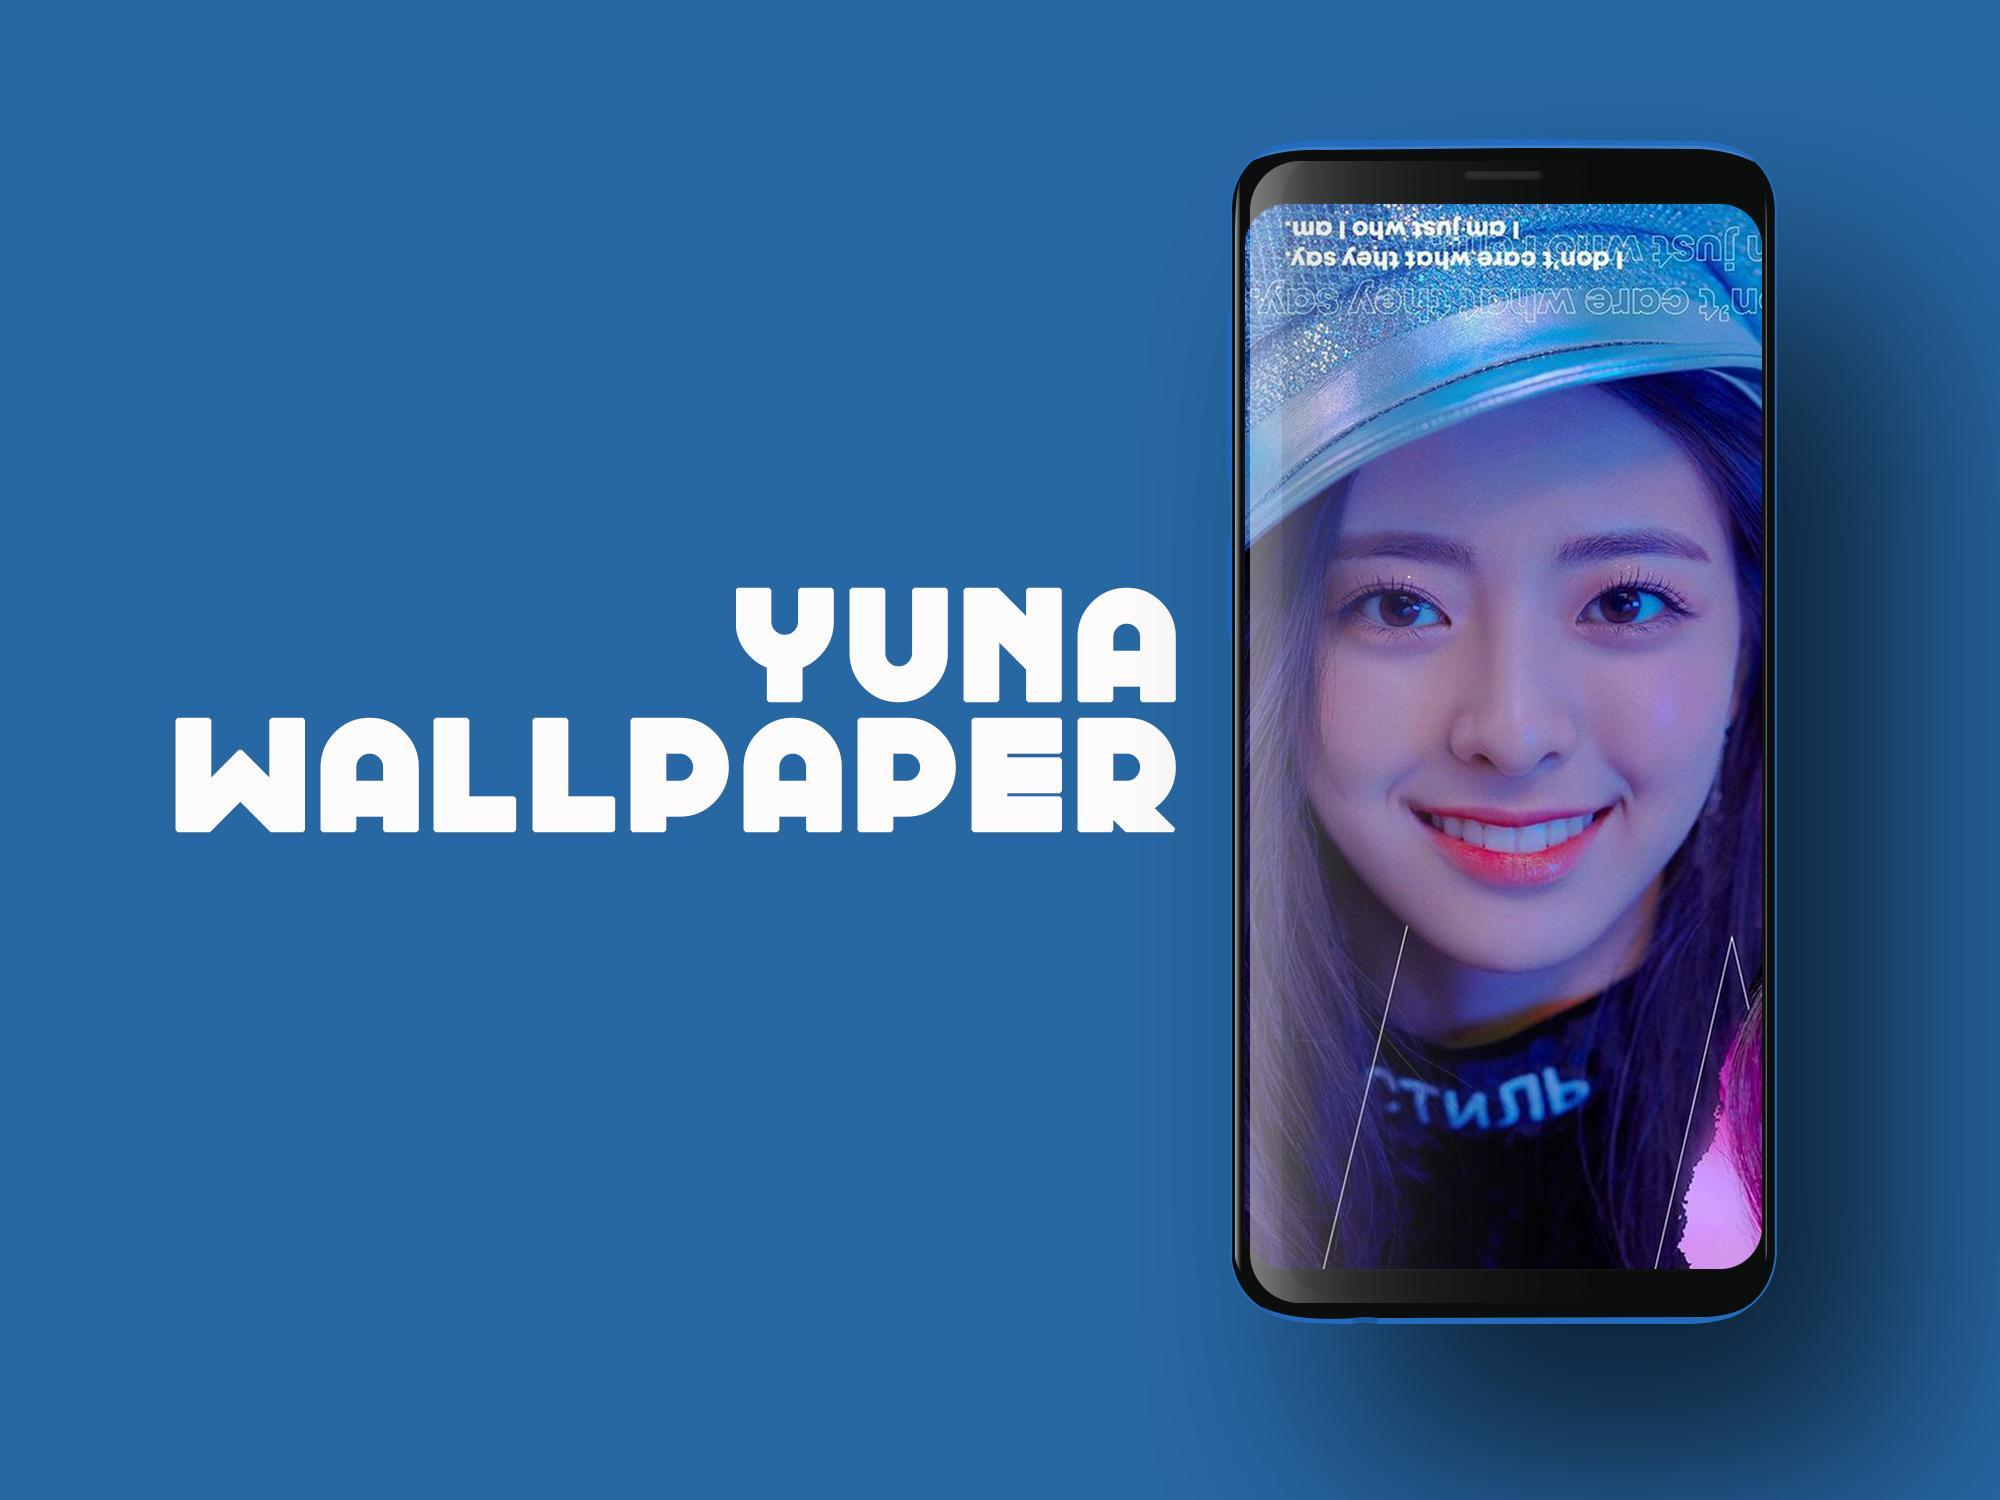 Itzy Yuna Wallpapers Kpop Fans Hd For Android Apk Download